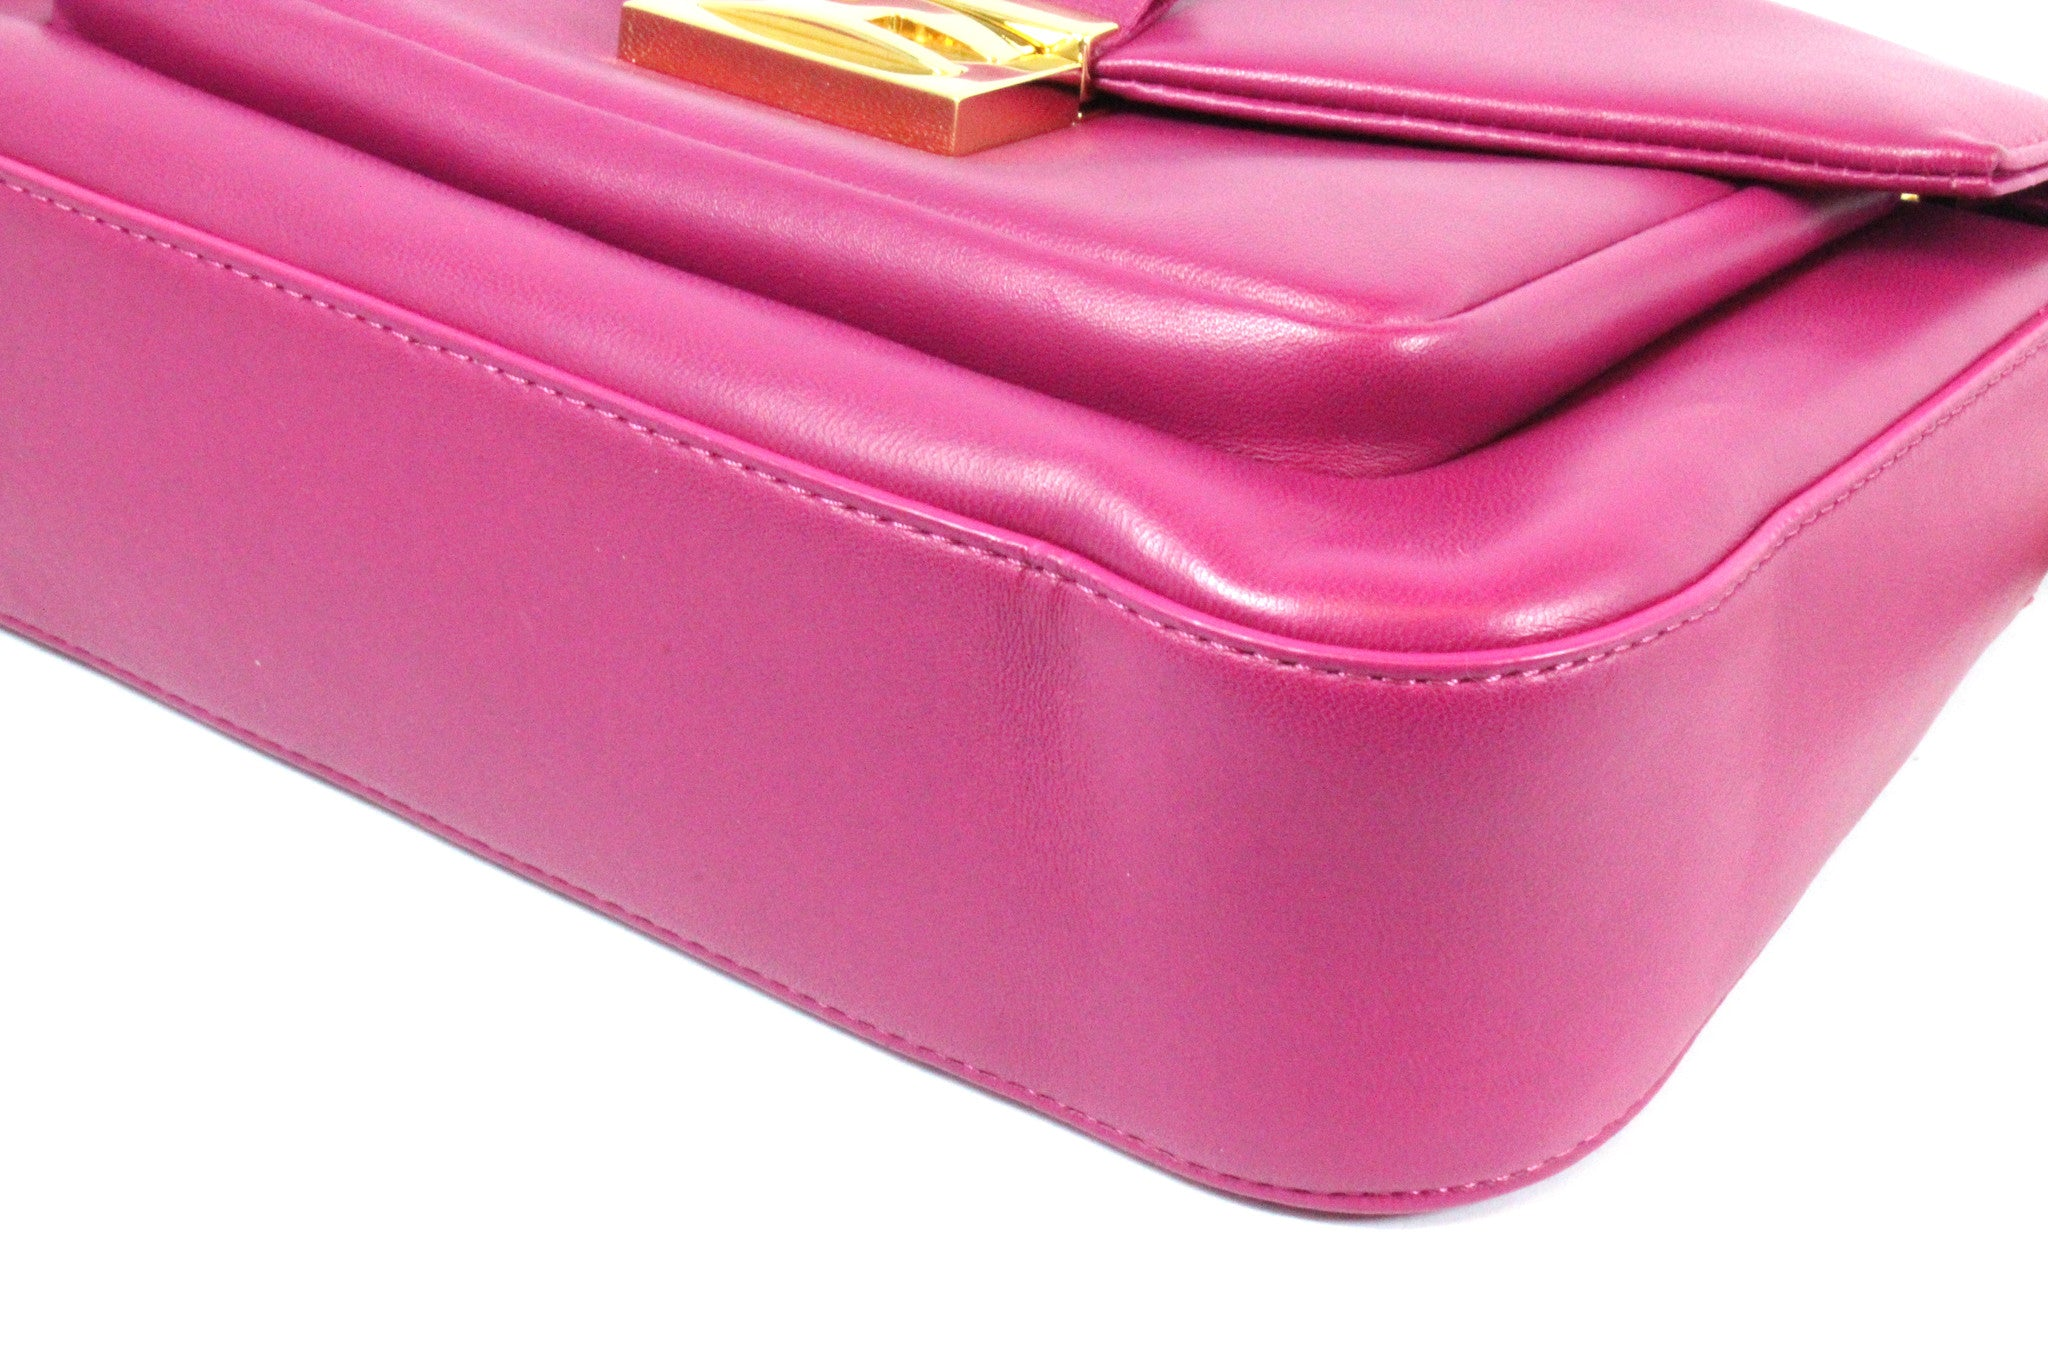 cd7037c1 Fendi Cyclamen Pink Leather Logo Buckle 'Be Baguette' Bag